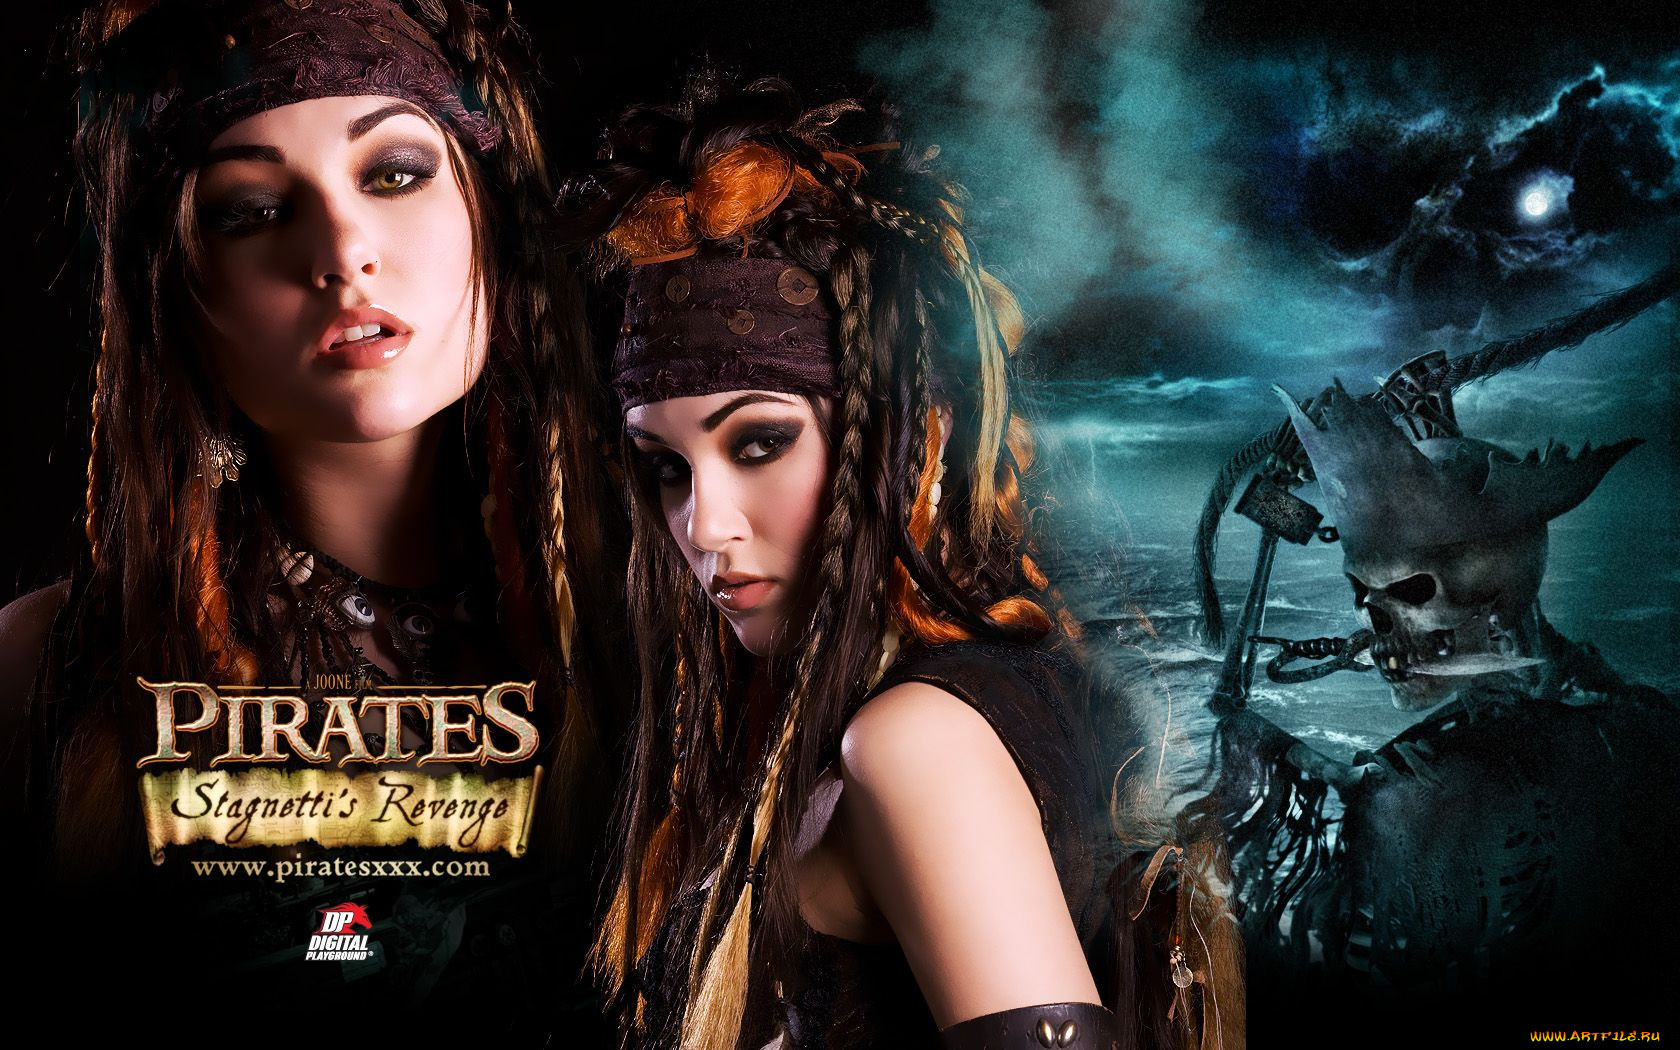 Pirate xxx movie 3gp sex movie